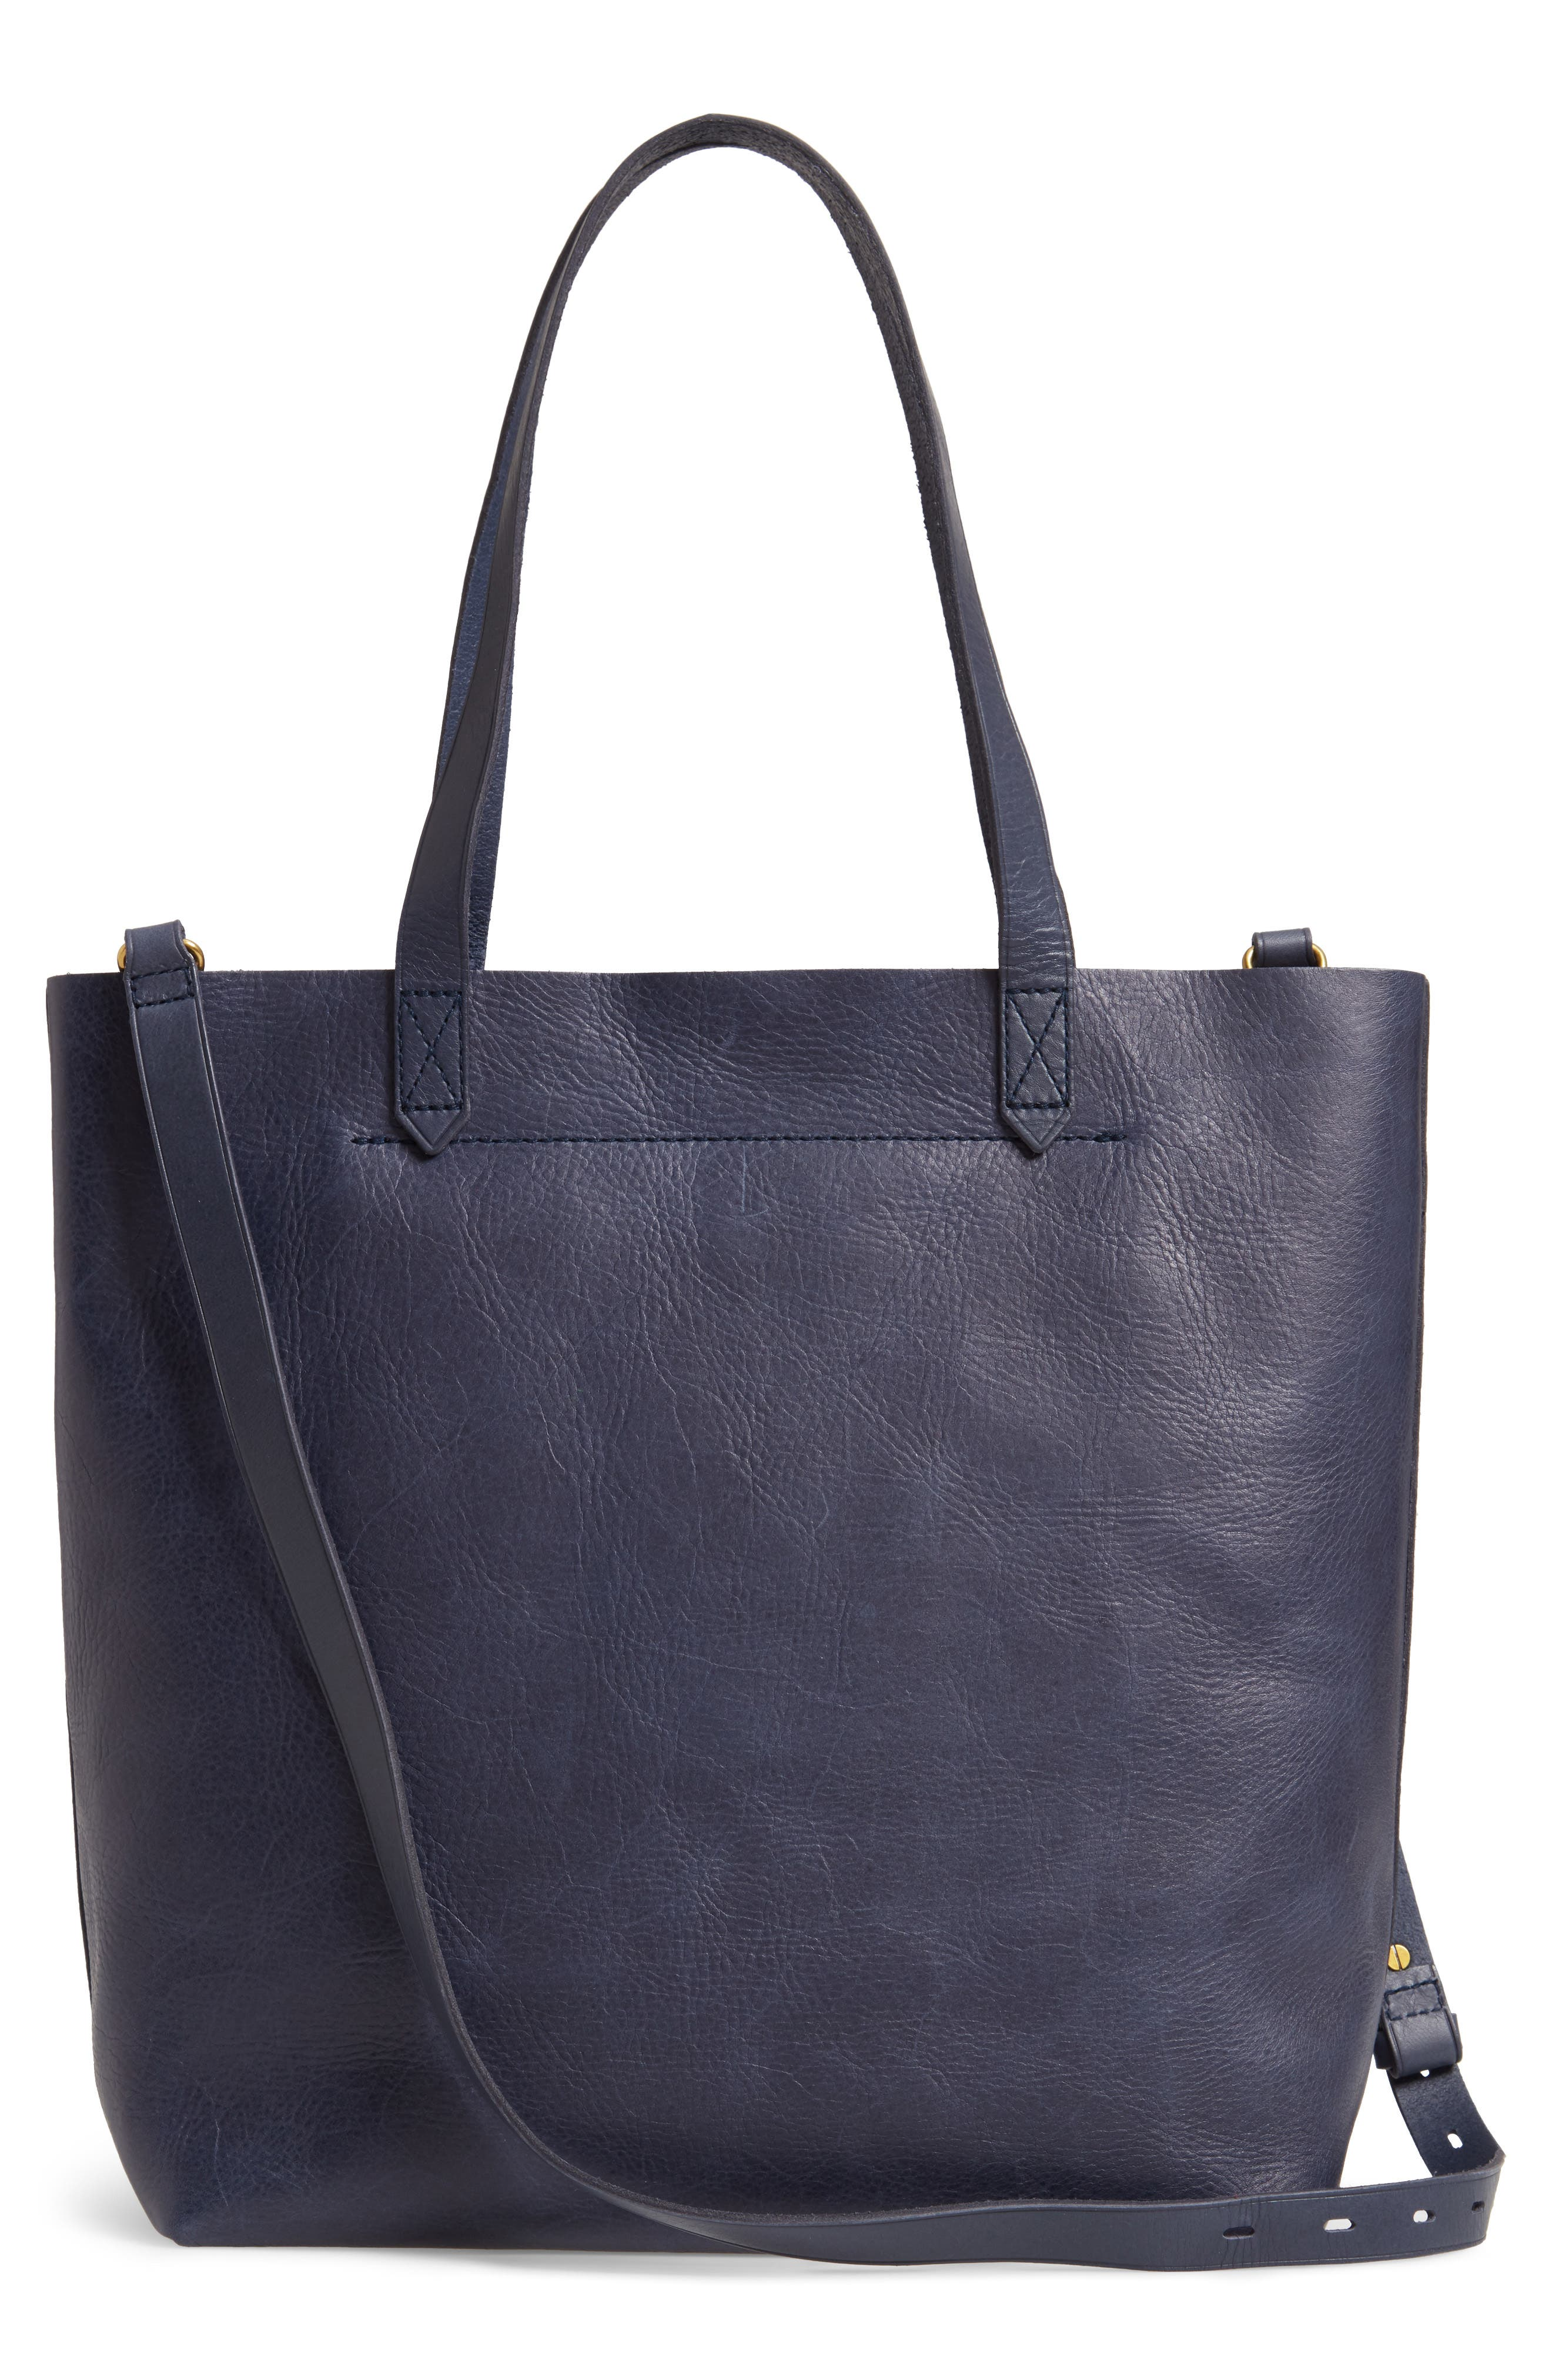 Medium Leather Transport Tote,                             Alternate thumbnail 3, color,                             DEEP NAVY